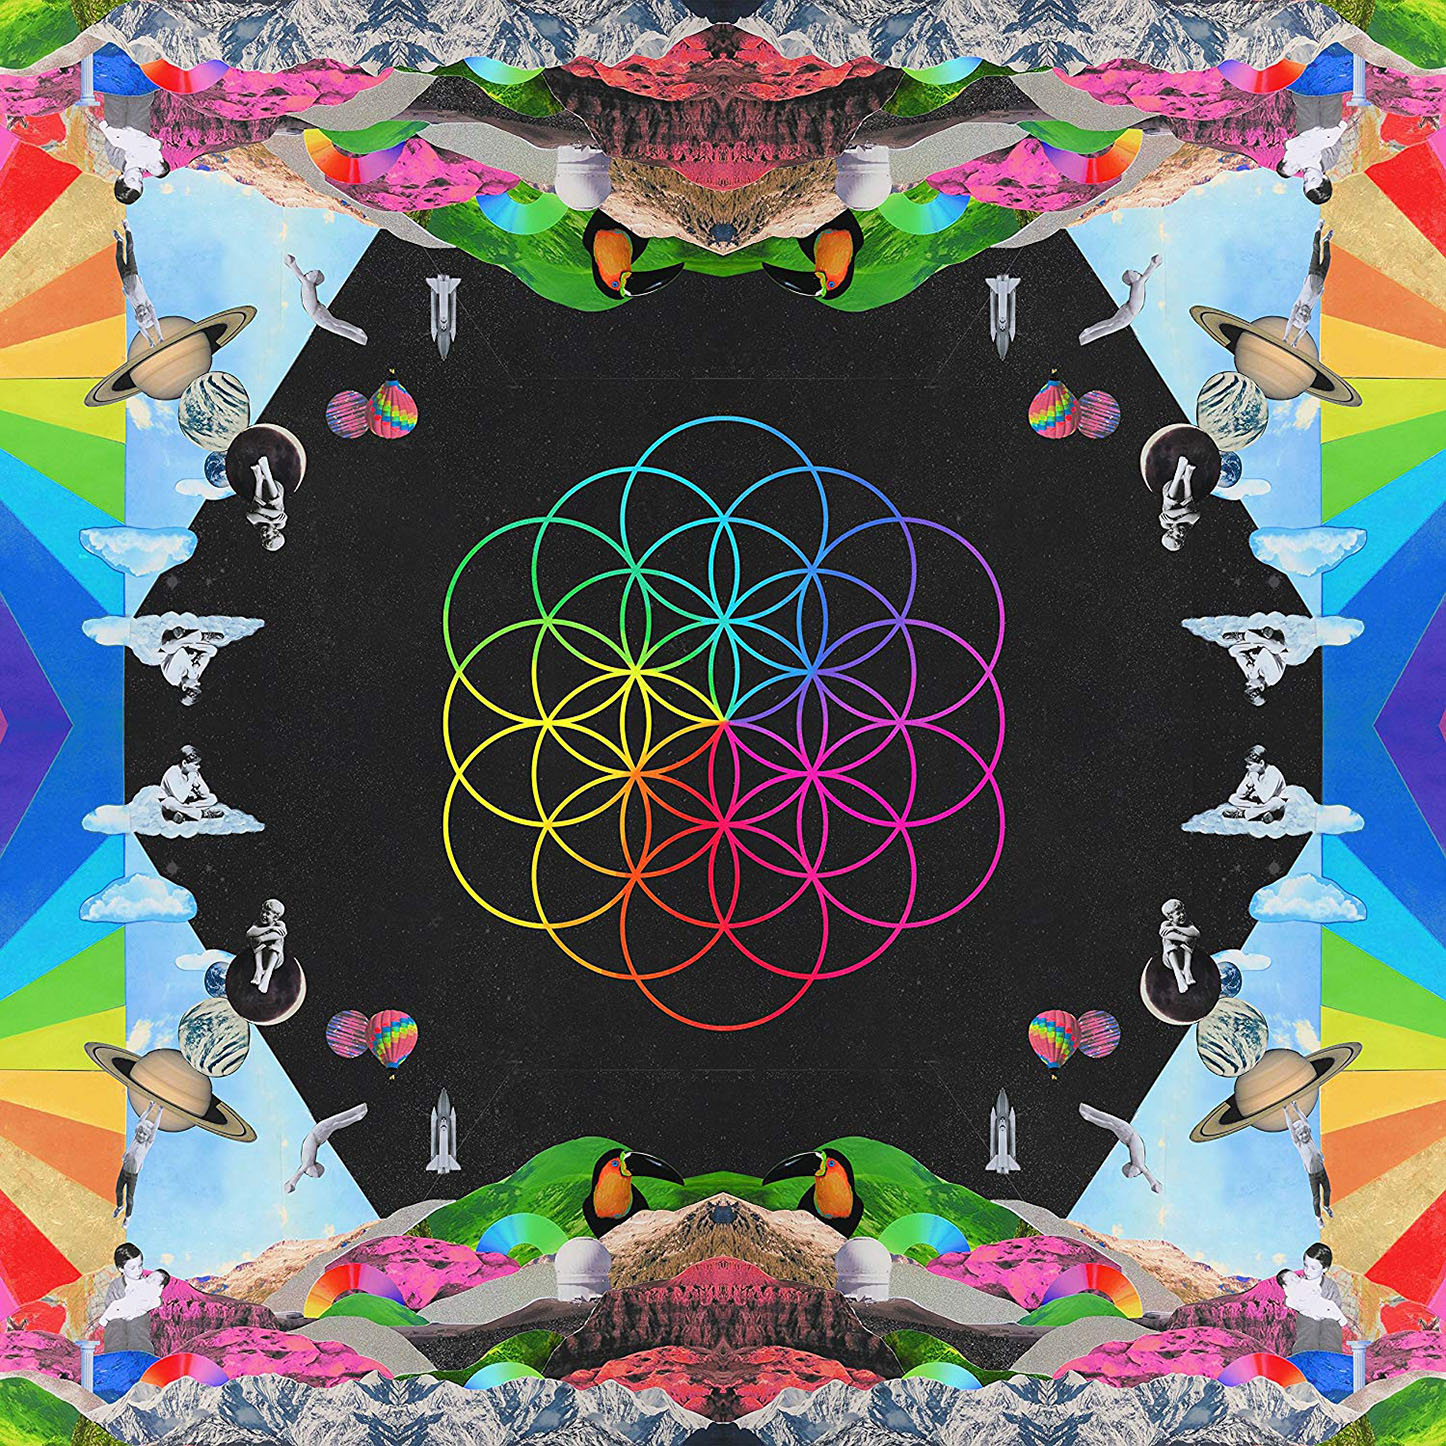 「Adventure of a Lifetime」収録アルバム『A Head Full of Dreams』 /Coldplay